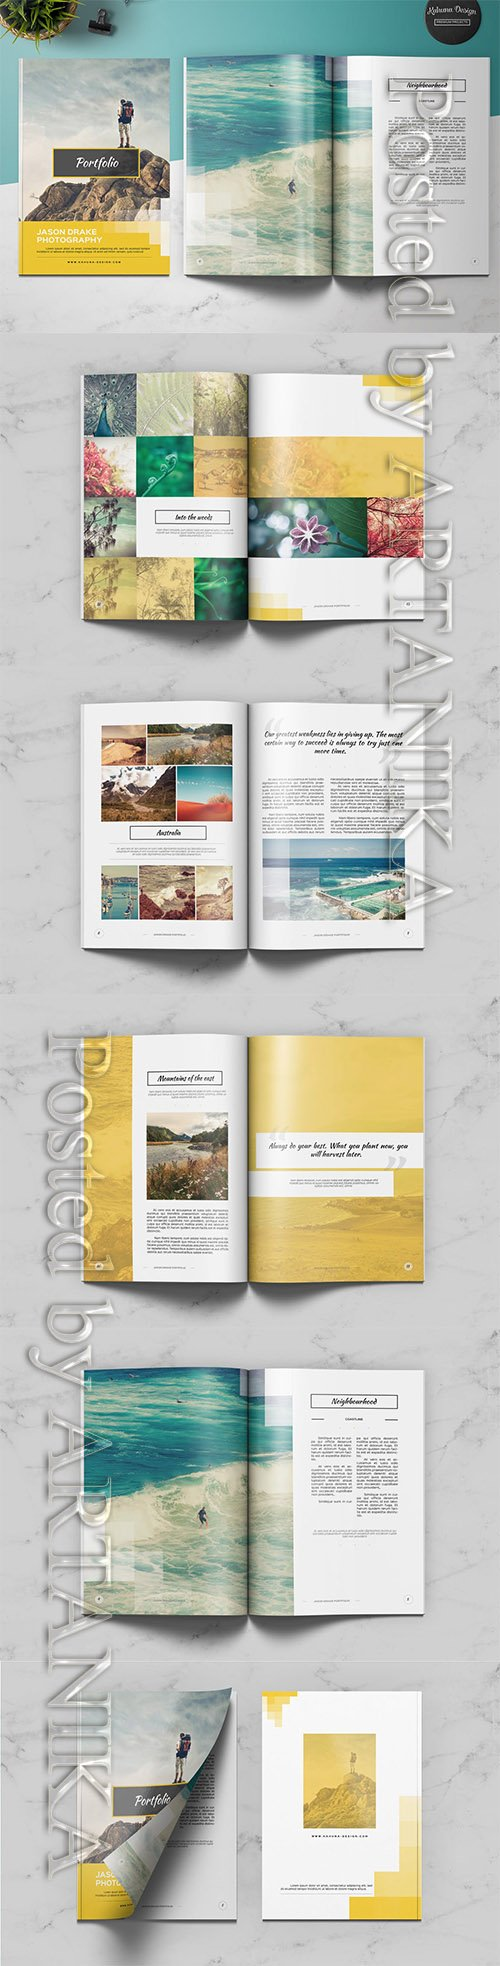 Portfolio Modern Catalog / Brochure Indesign Template